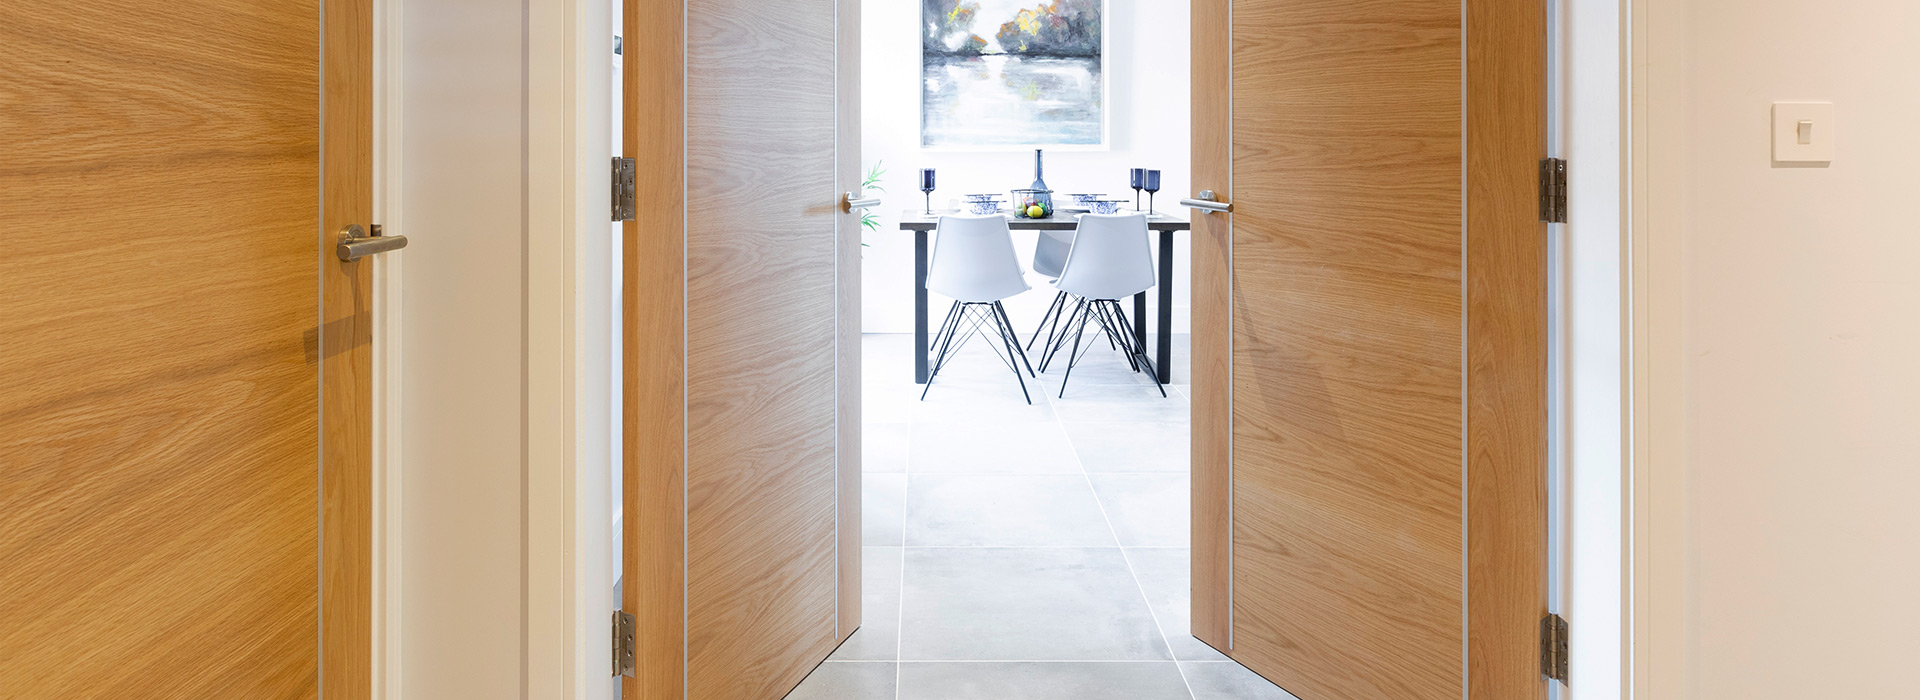 Oak double doors with metal strips